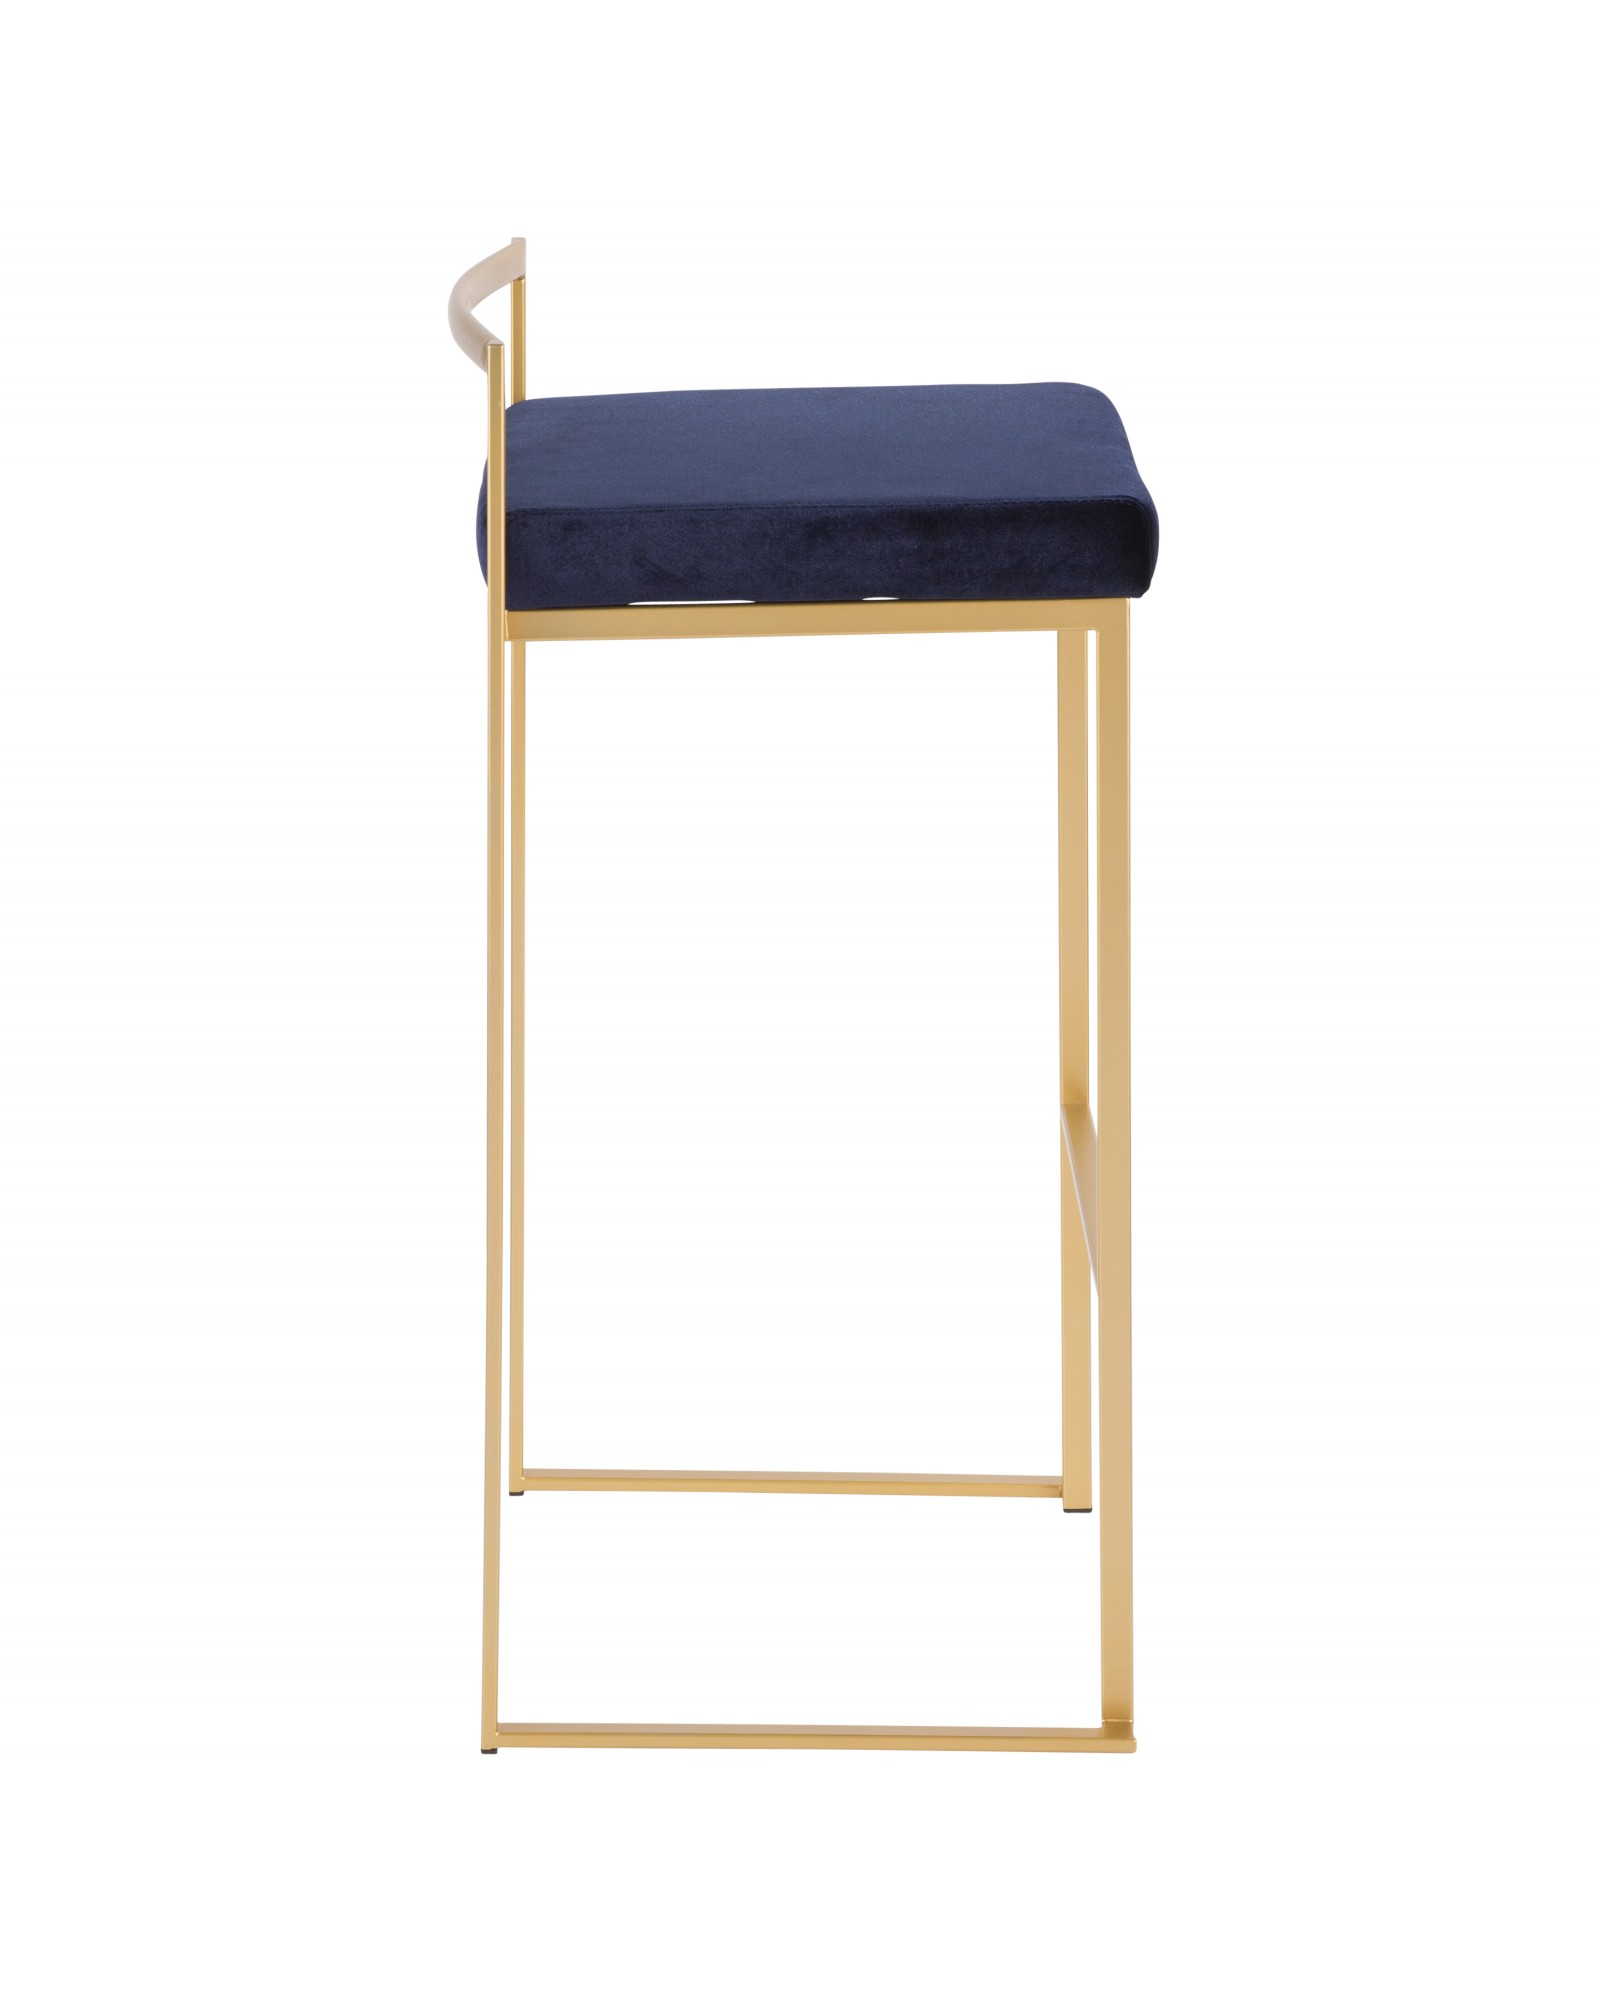 Fuji Barstool Fuji Contemporary Glam Stackable Barstool in Gold